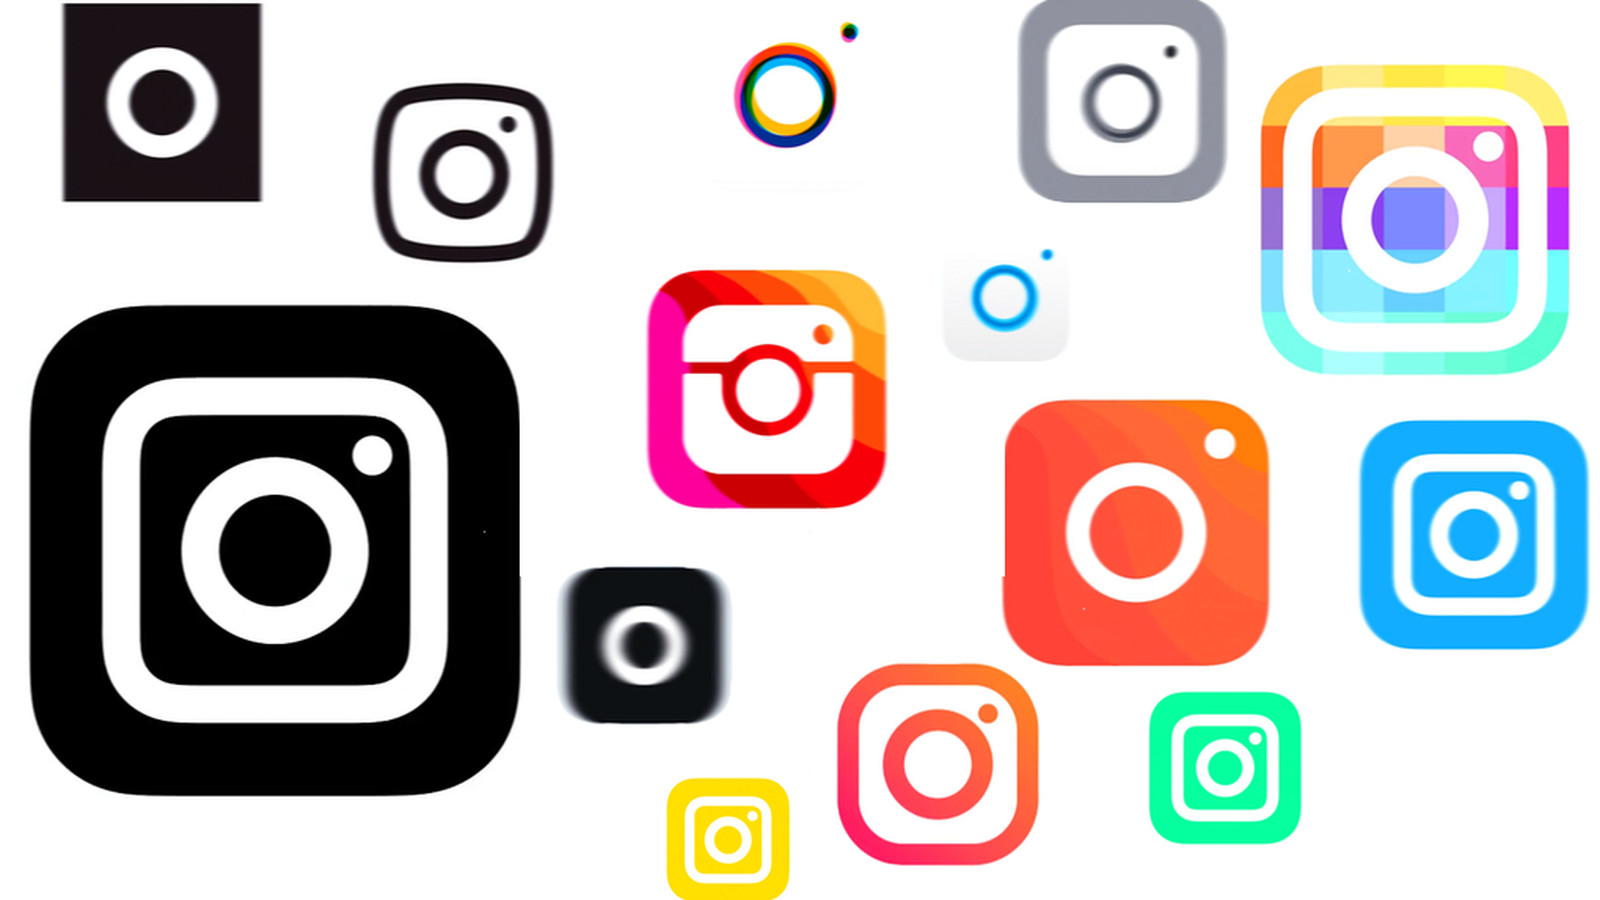 These are the Instagram icons that could have been - The Verge